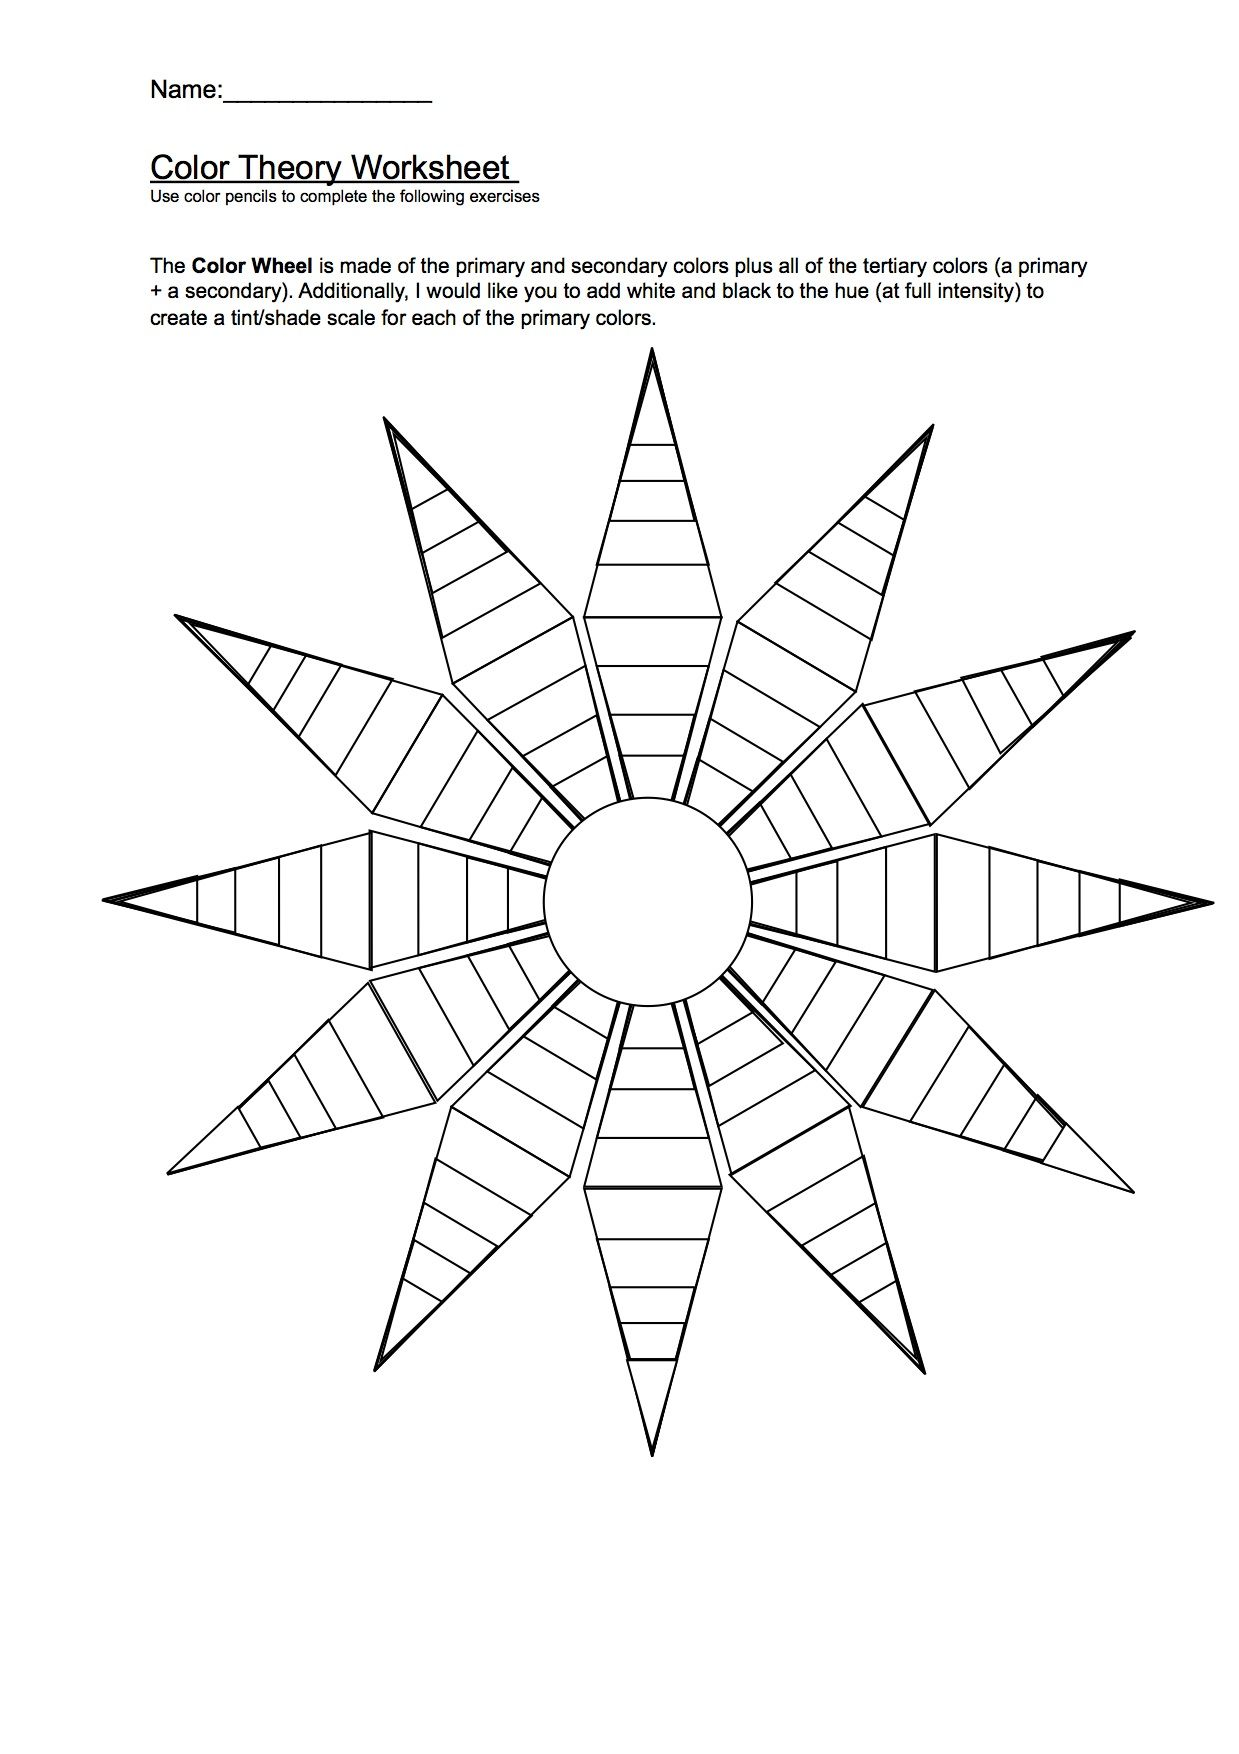 Color Wheel Worksheet Worksheets And Color Wheels On